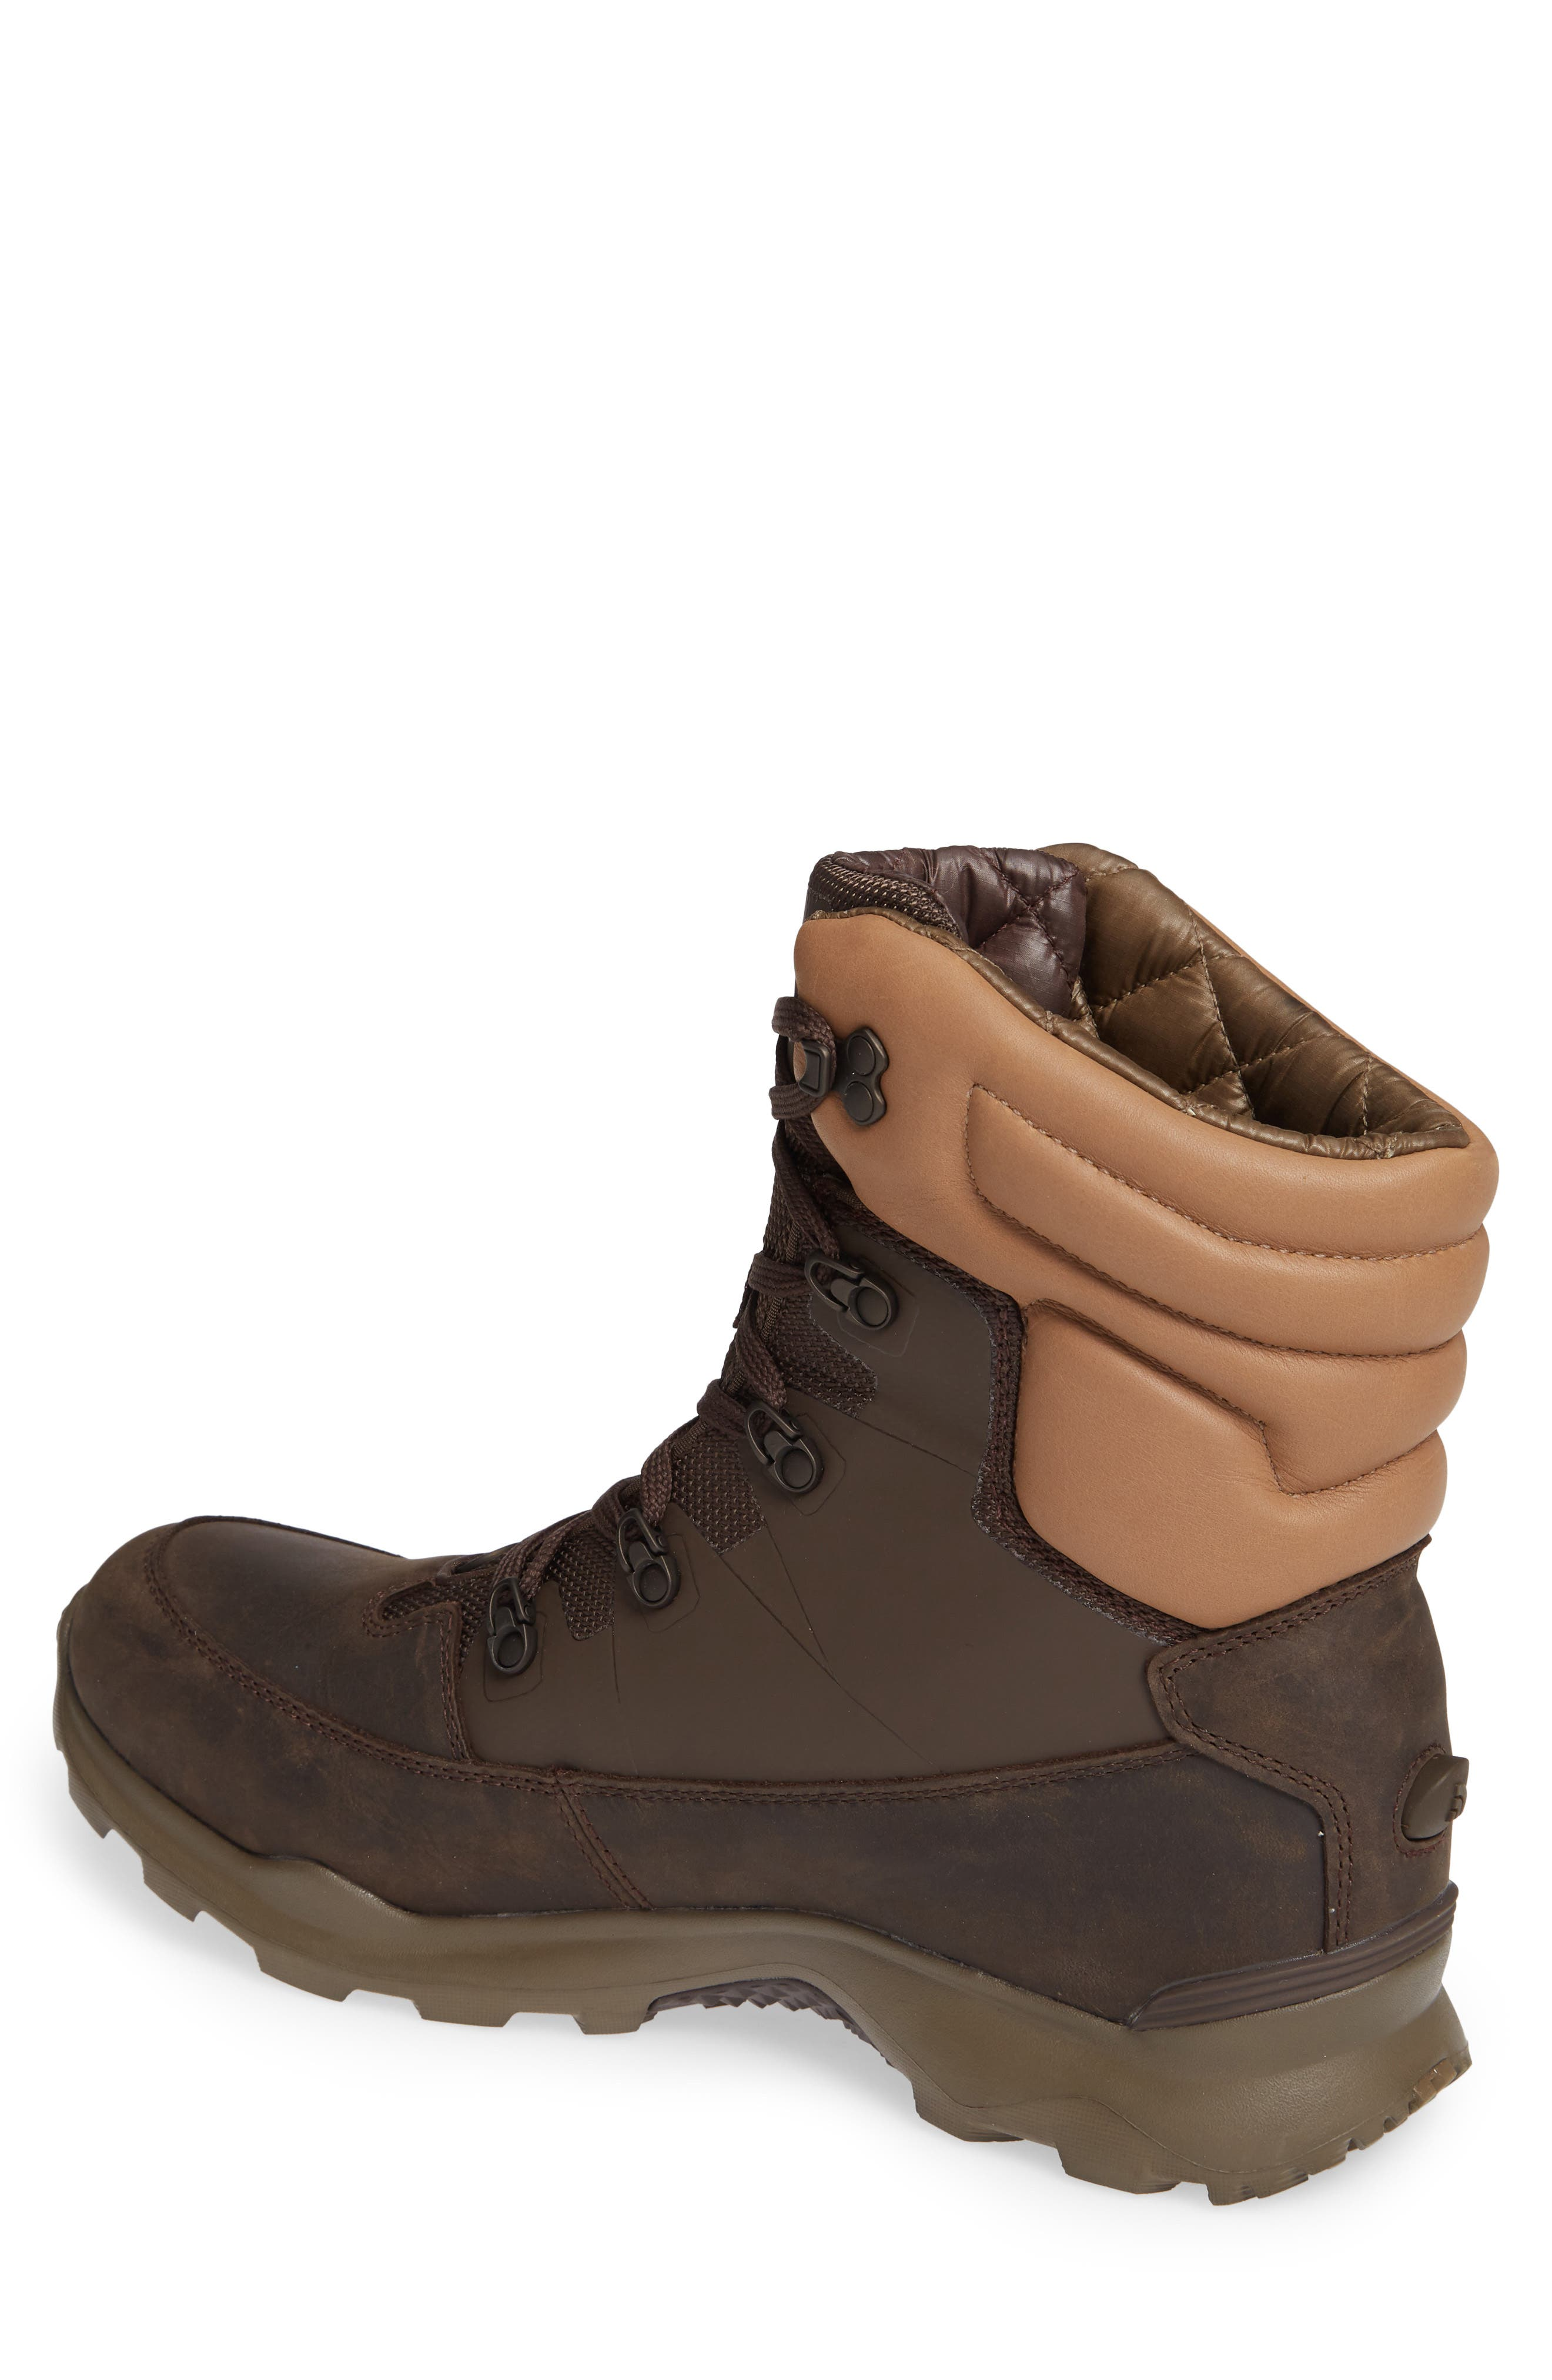 THE NORTH FACE,                             ThermoBall Lifty Snow Waterproof Boot,                             Alternate thumbnail 2, color,                             CHOCOLATE BROWN/ CARGO KHAKI